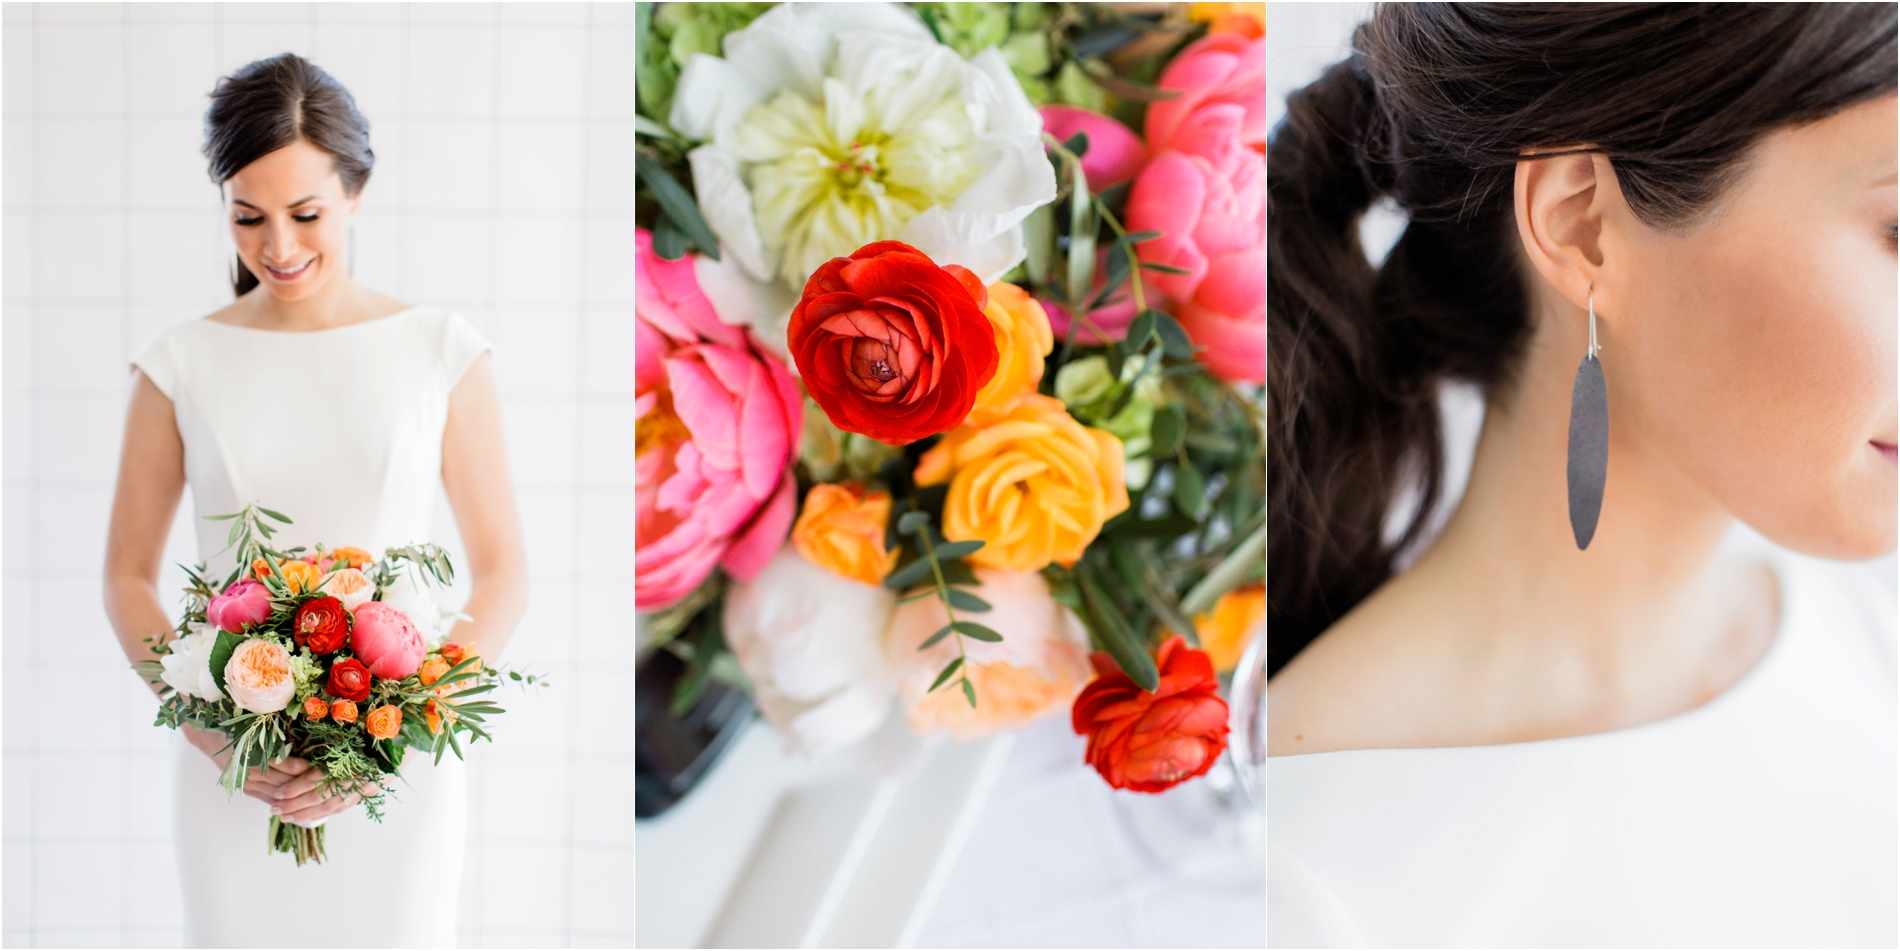 Grand Rapids, MI Beautiful Bridal Portraits with Bouquet